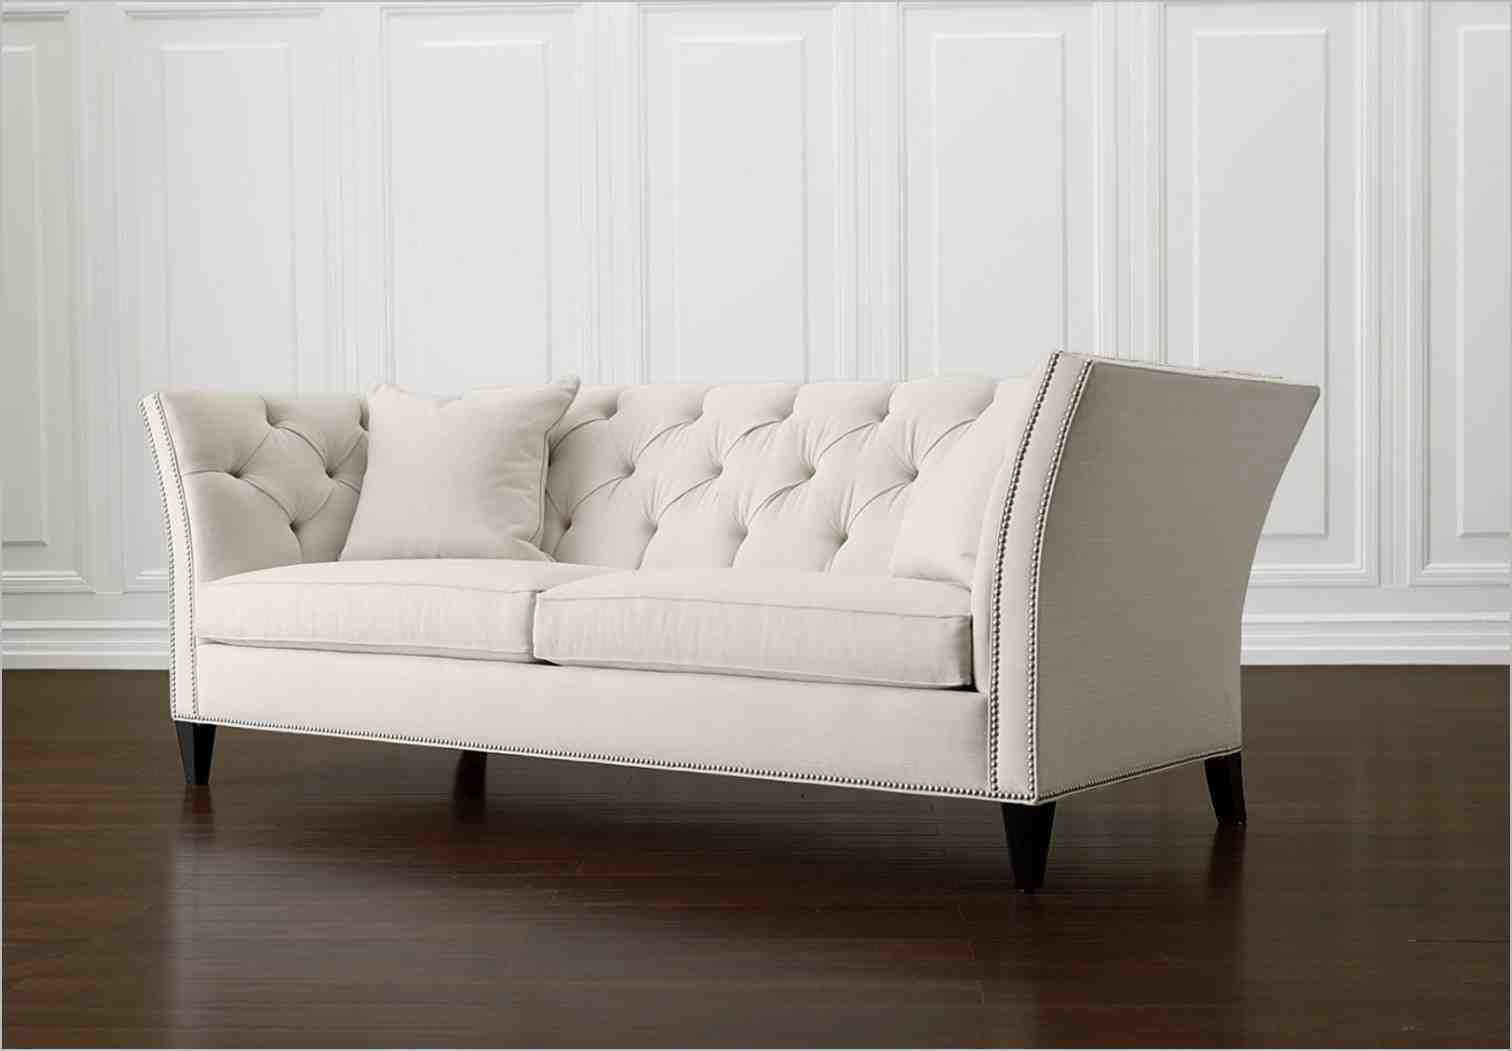 Ethan Allen Furniture Sofas Home Furniture Design